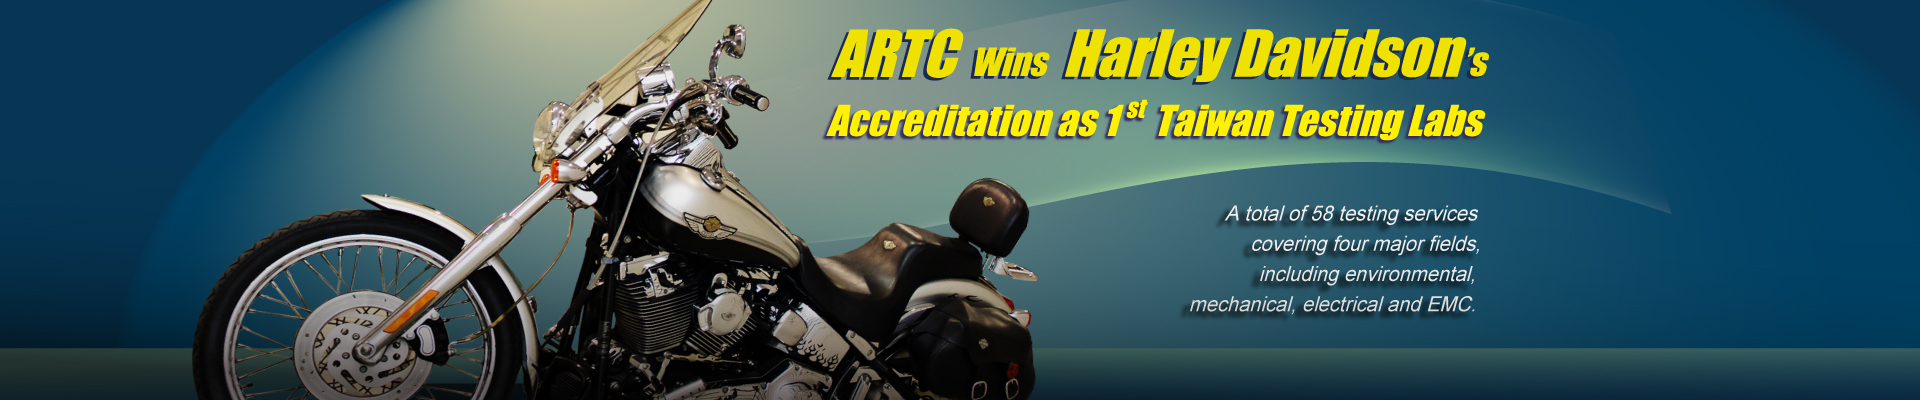 ARTC Wins Harley Davidson's Accreditation for 1st Overseas Testing Labs